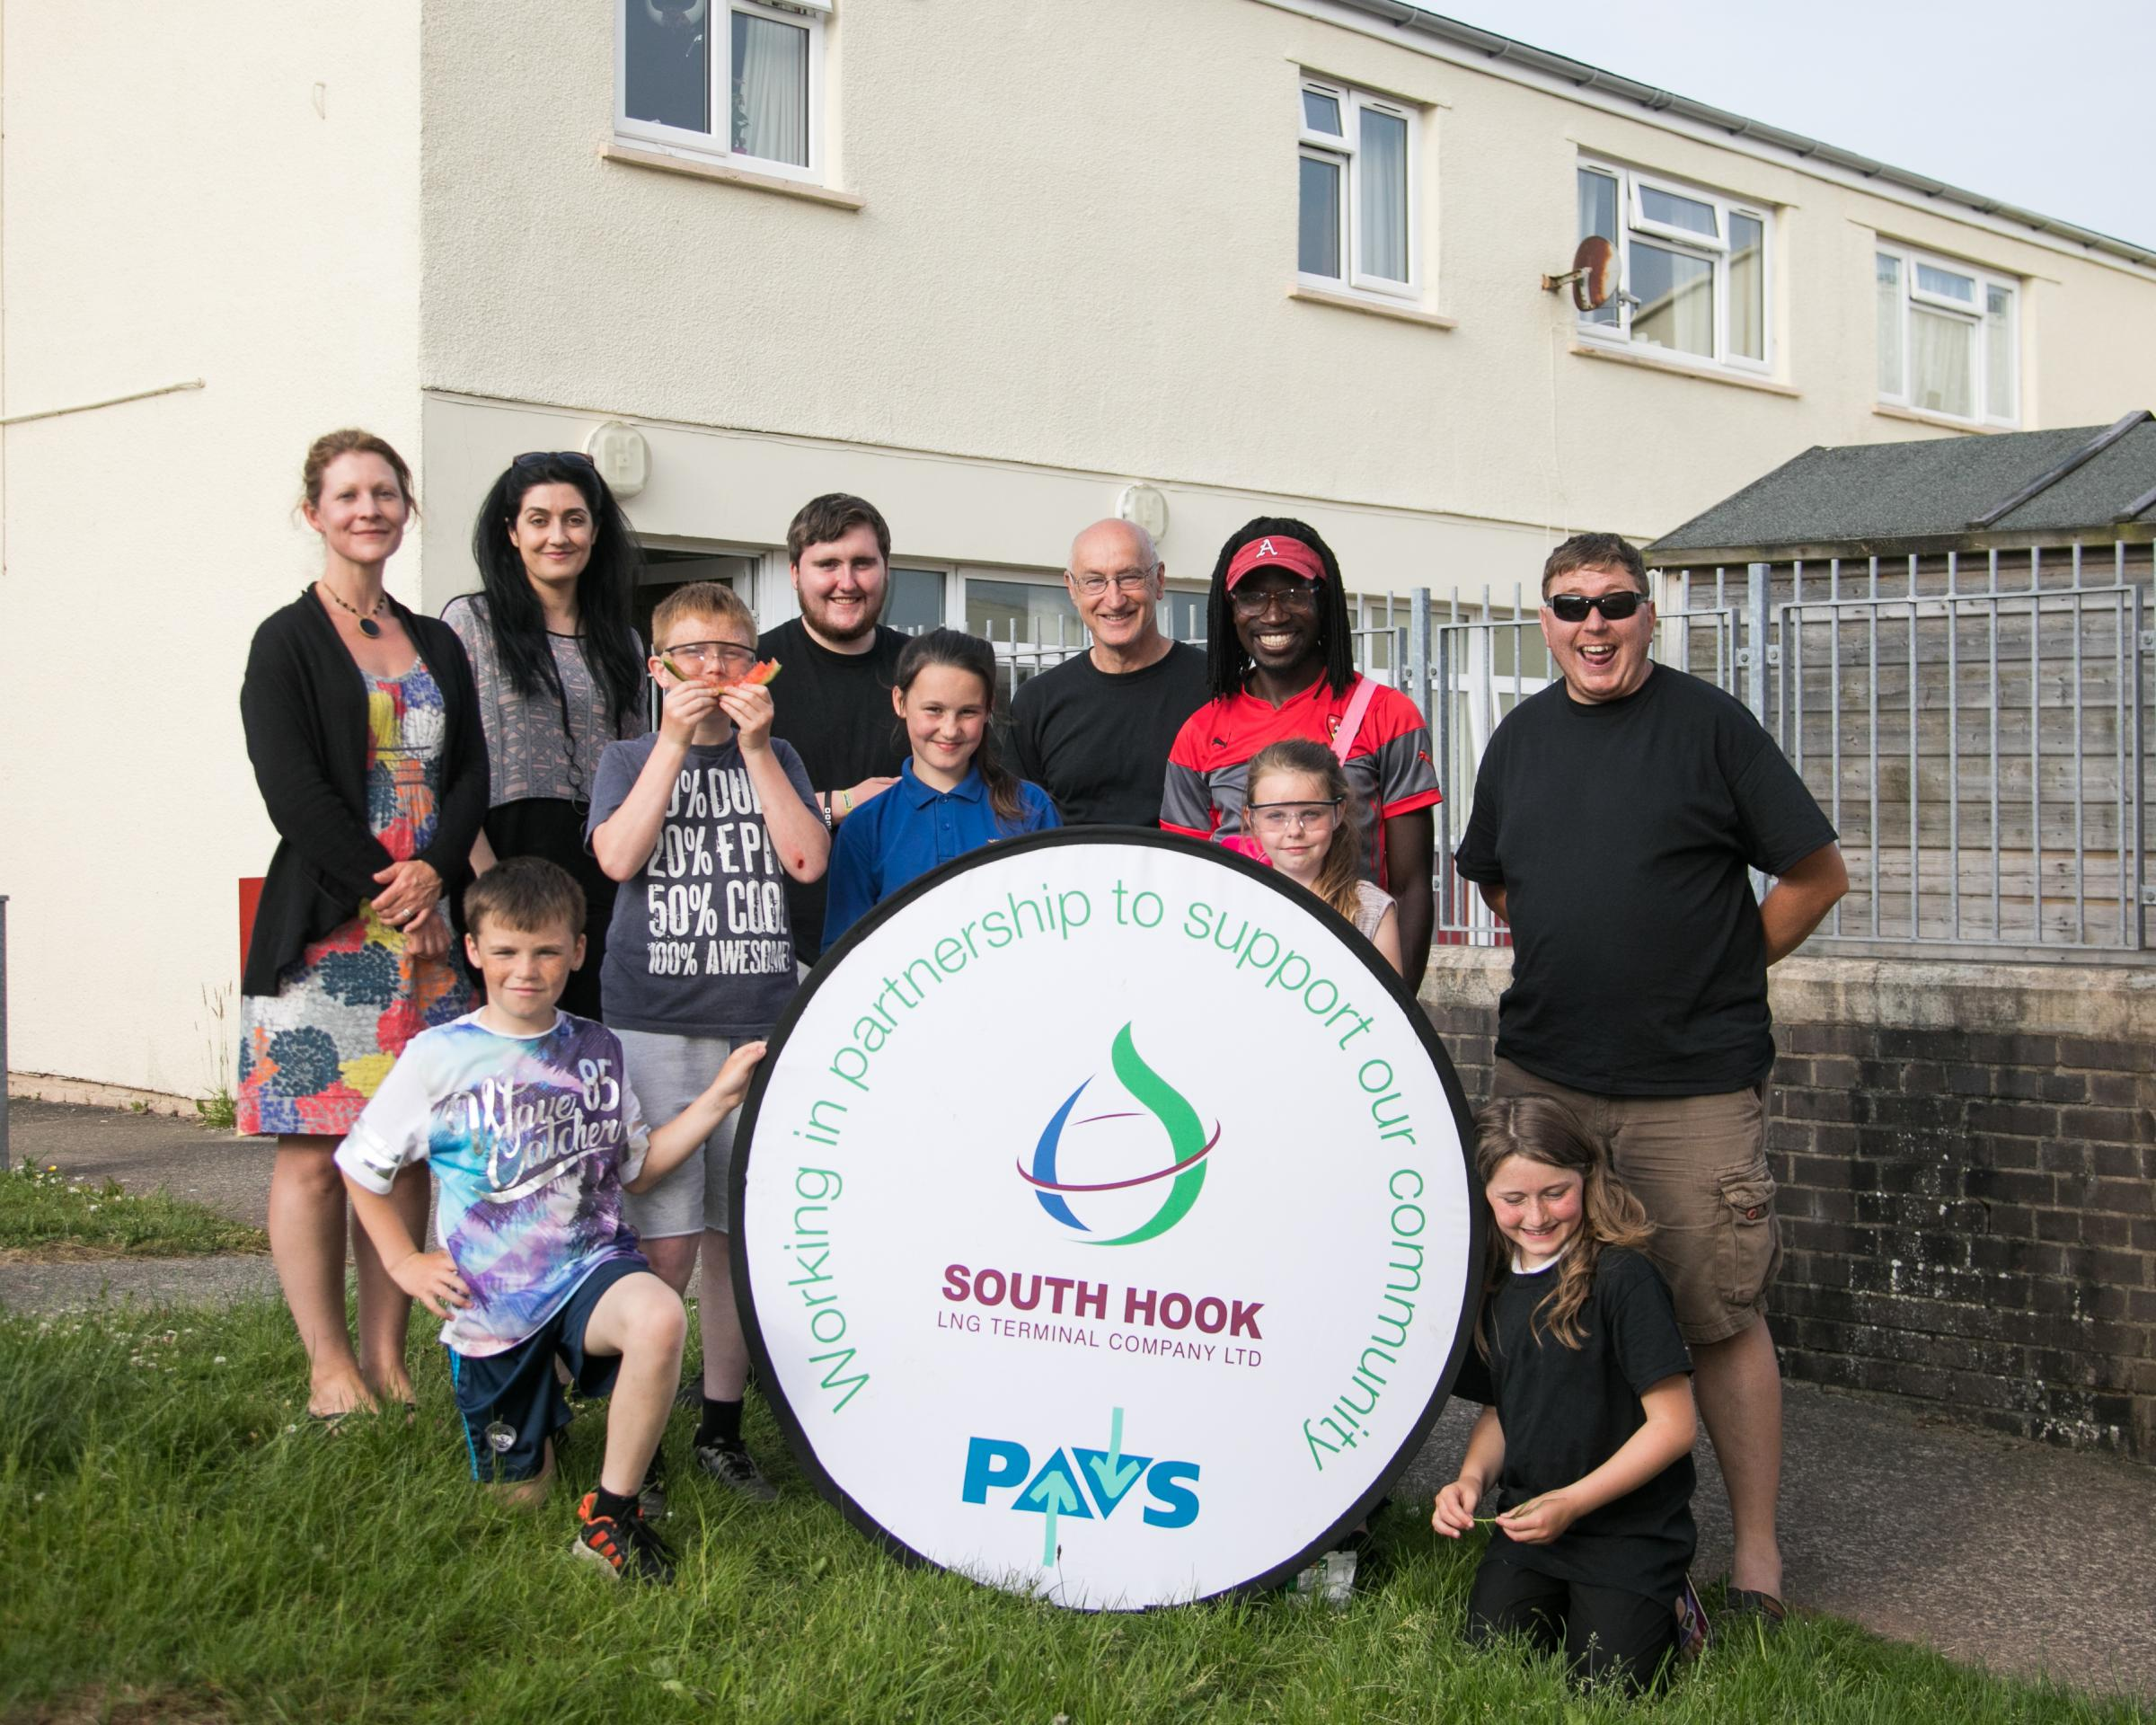 Steve Blunt, Young Life International, Lorna Livock, Pembrokeshire Association of Voluntary Services (PAVS), young members of The Mount Community Centre and Mariam Dalziel of South Hook LNG Terminal.